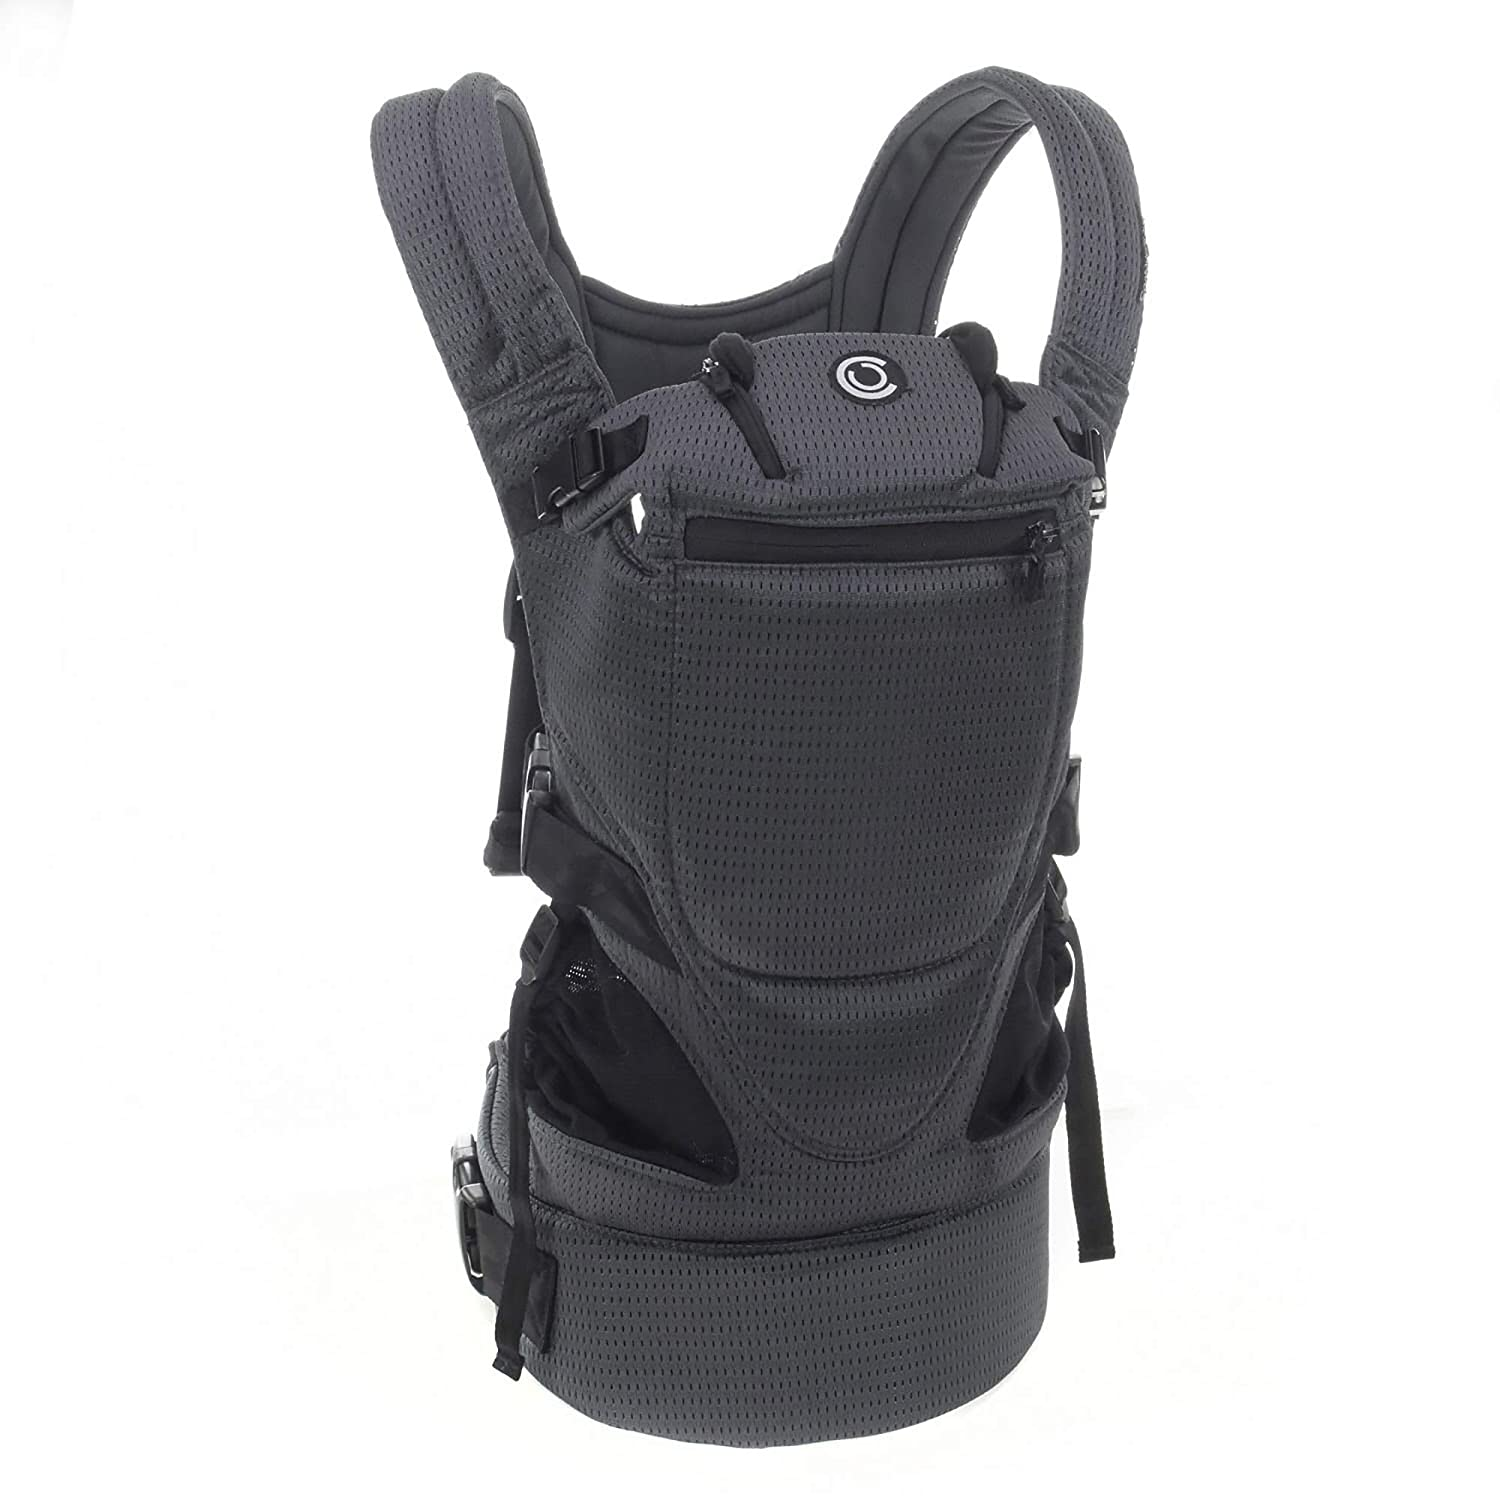 Contours Love 3 Position Baby Carrier, Charcoal Gray